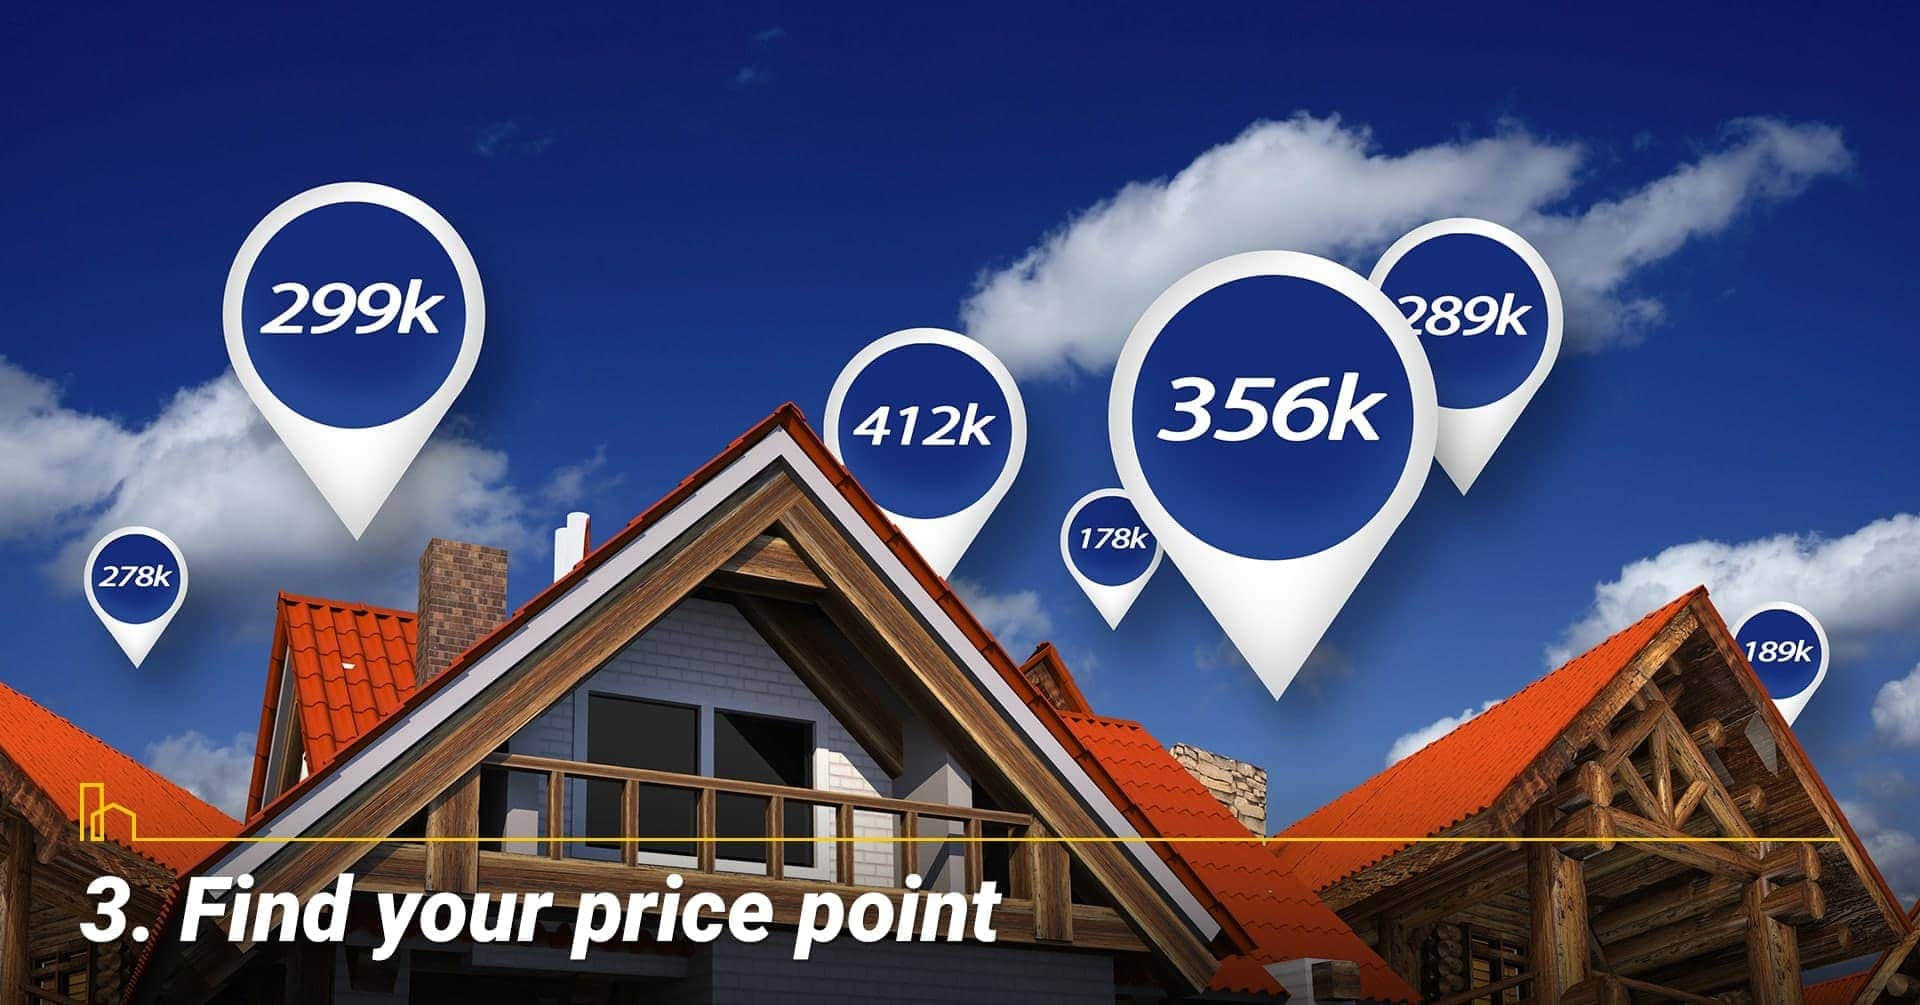 Find your price point